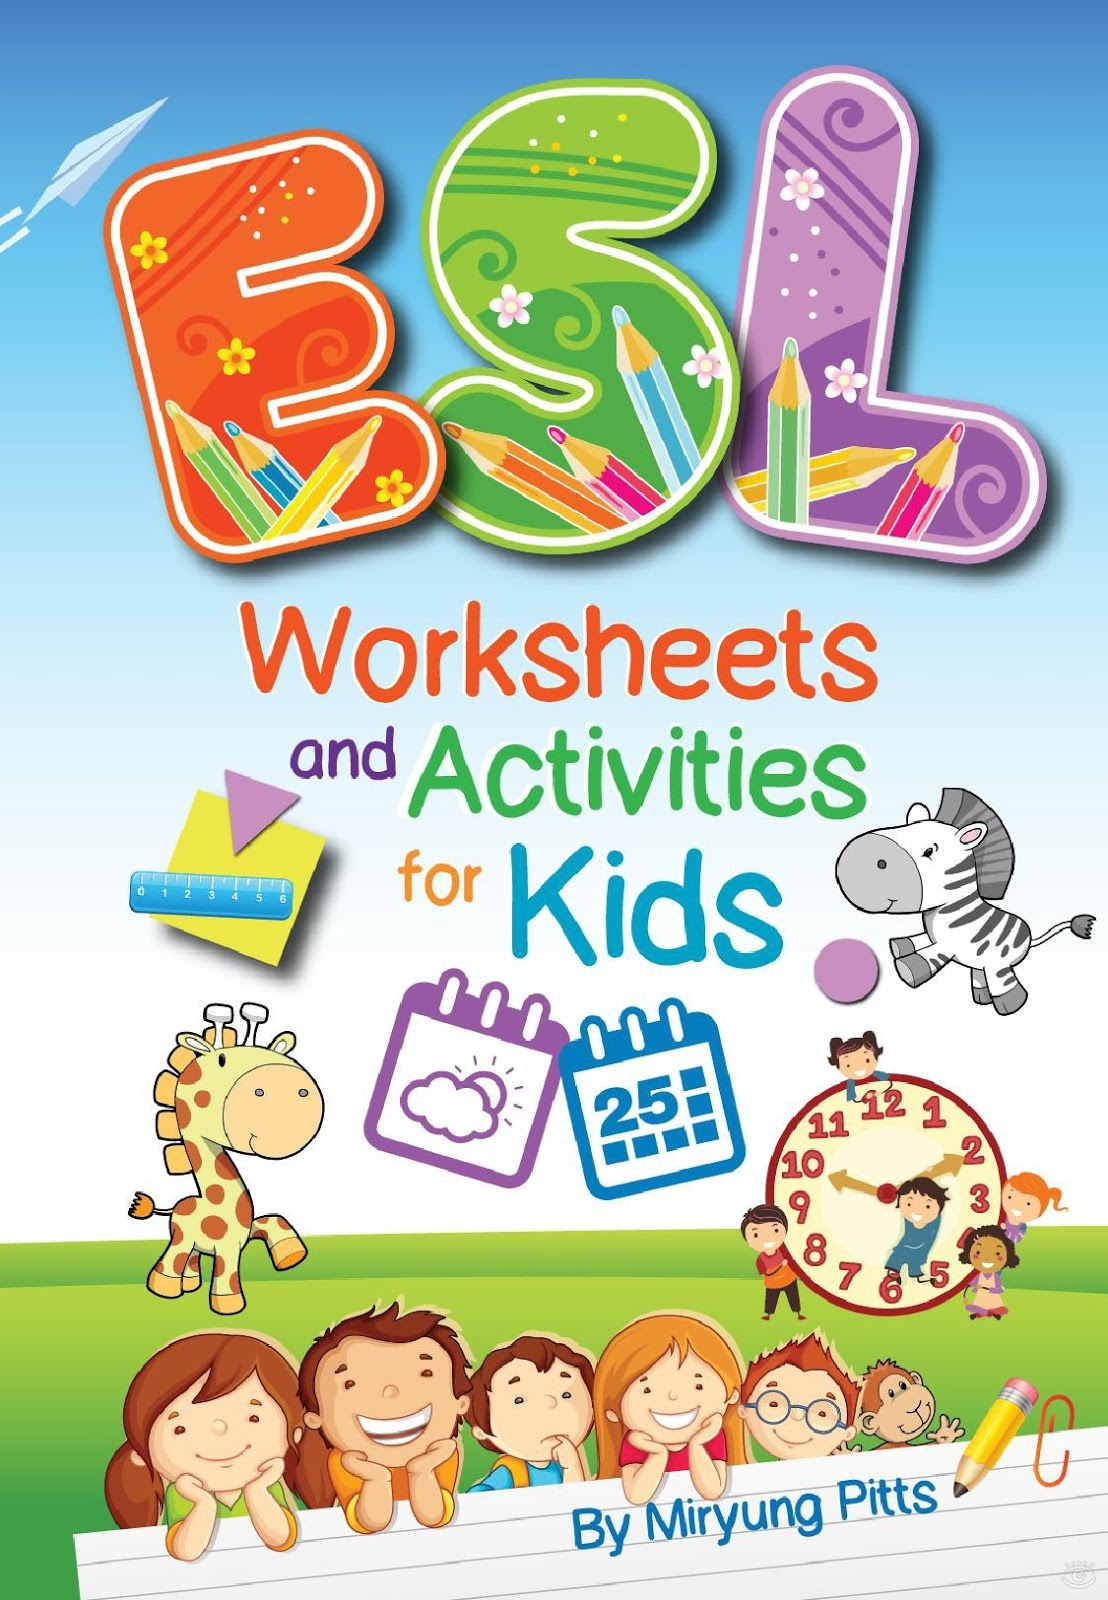 Download Esl Worksheets And Activities For Kids